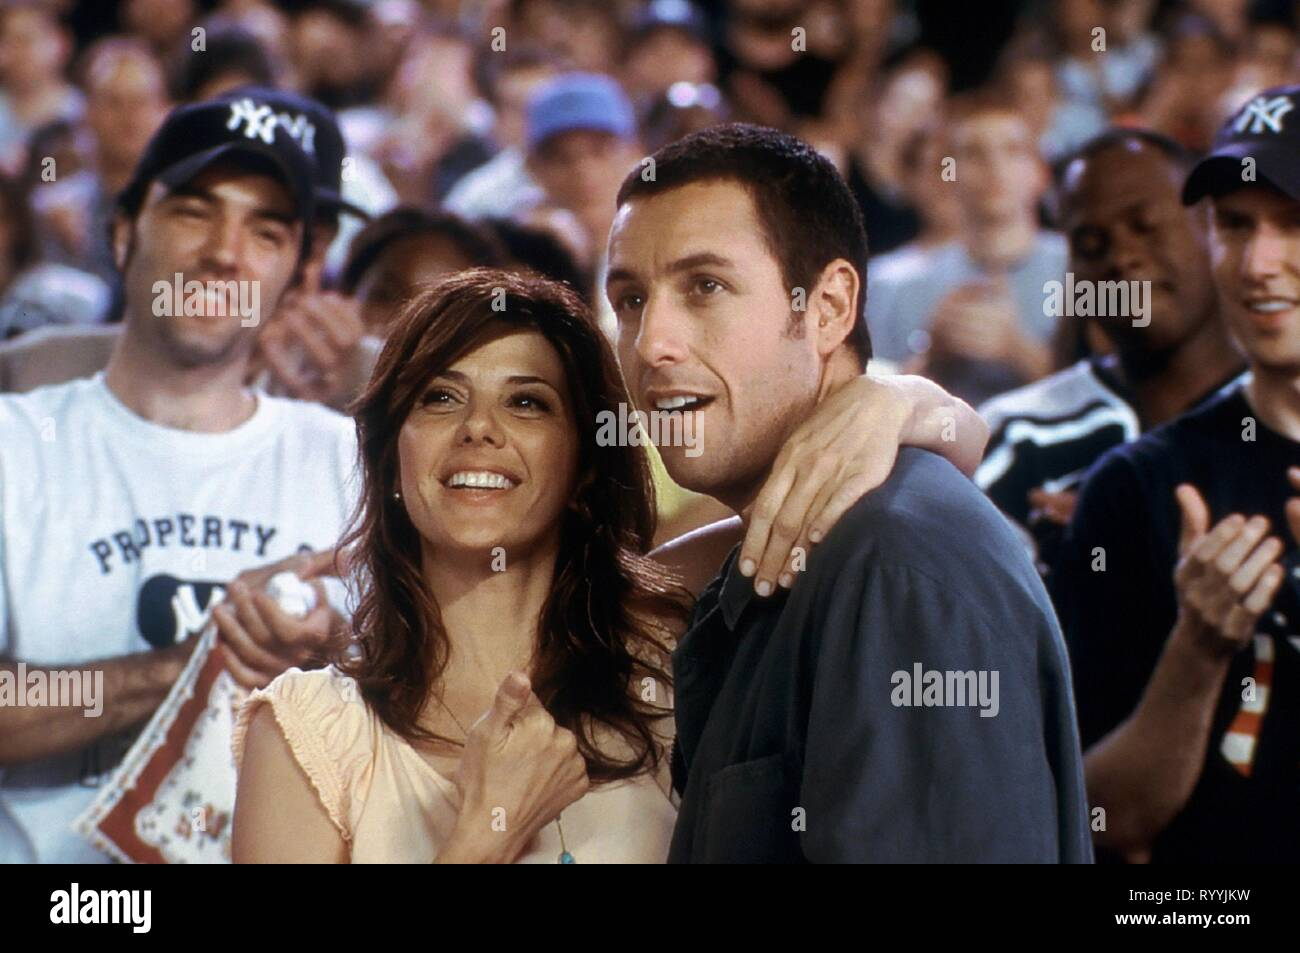 MARISA TOMEI, ADAM SANDLER, ANGER MANAGEMENT, 2003 - Stock Image